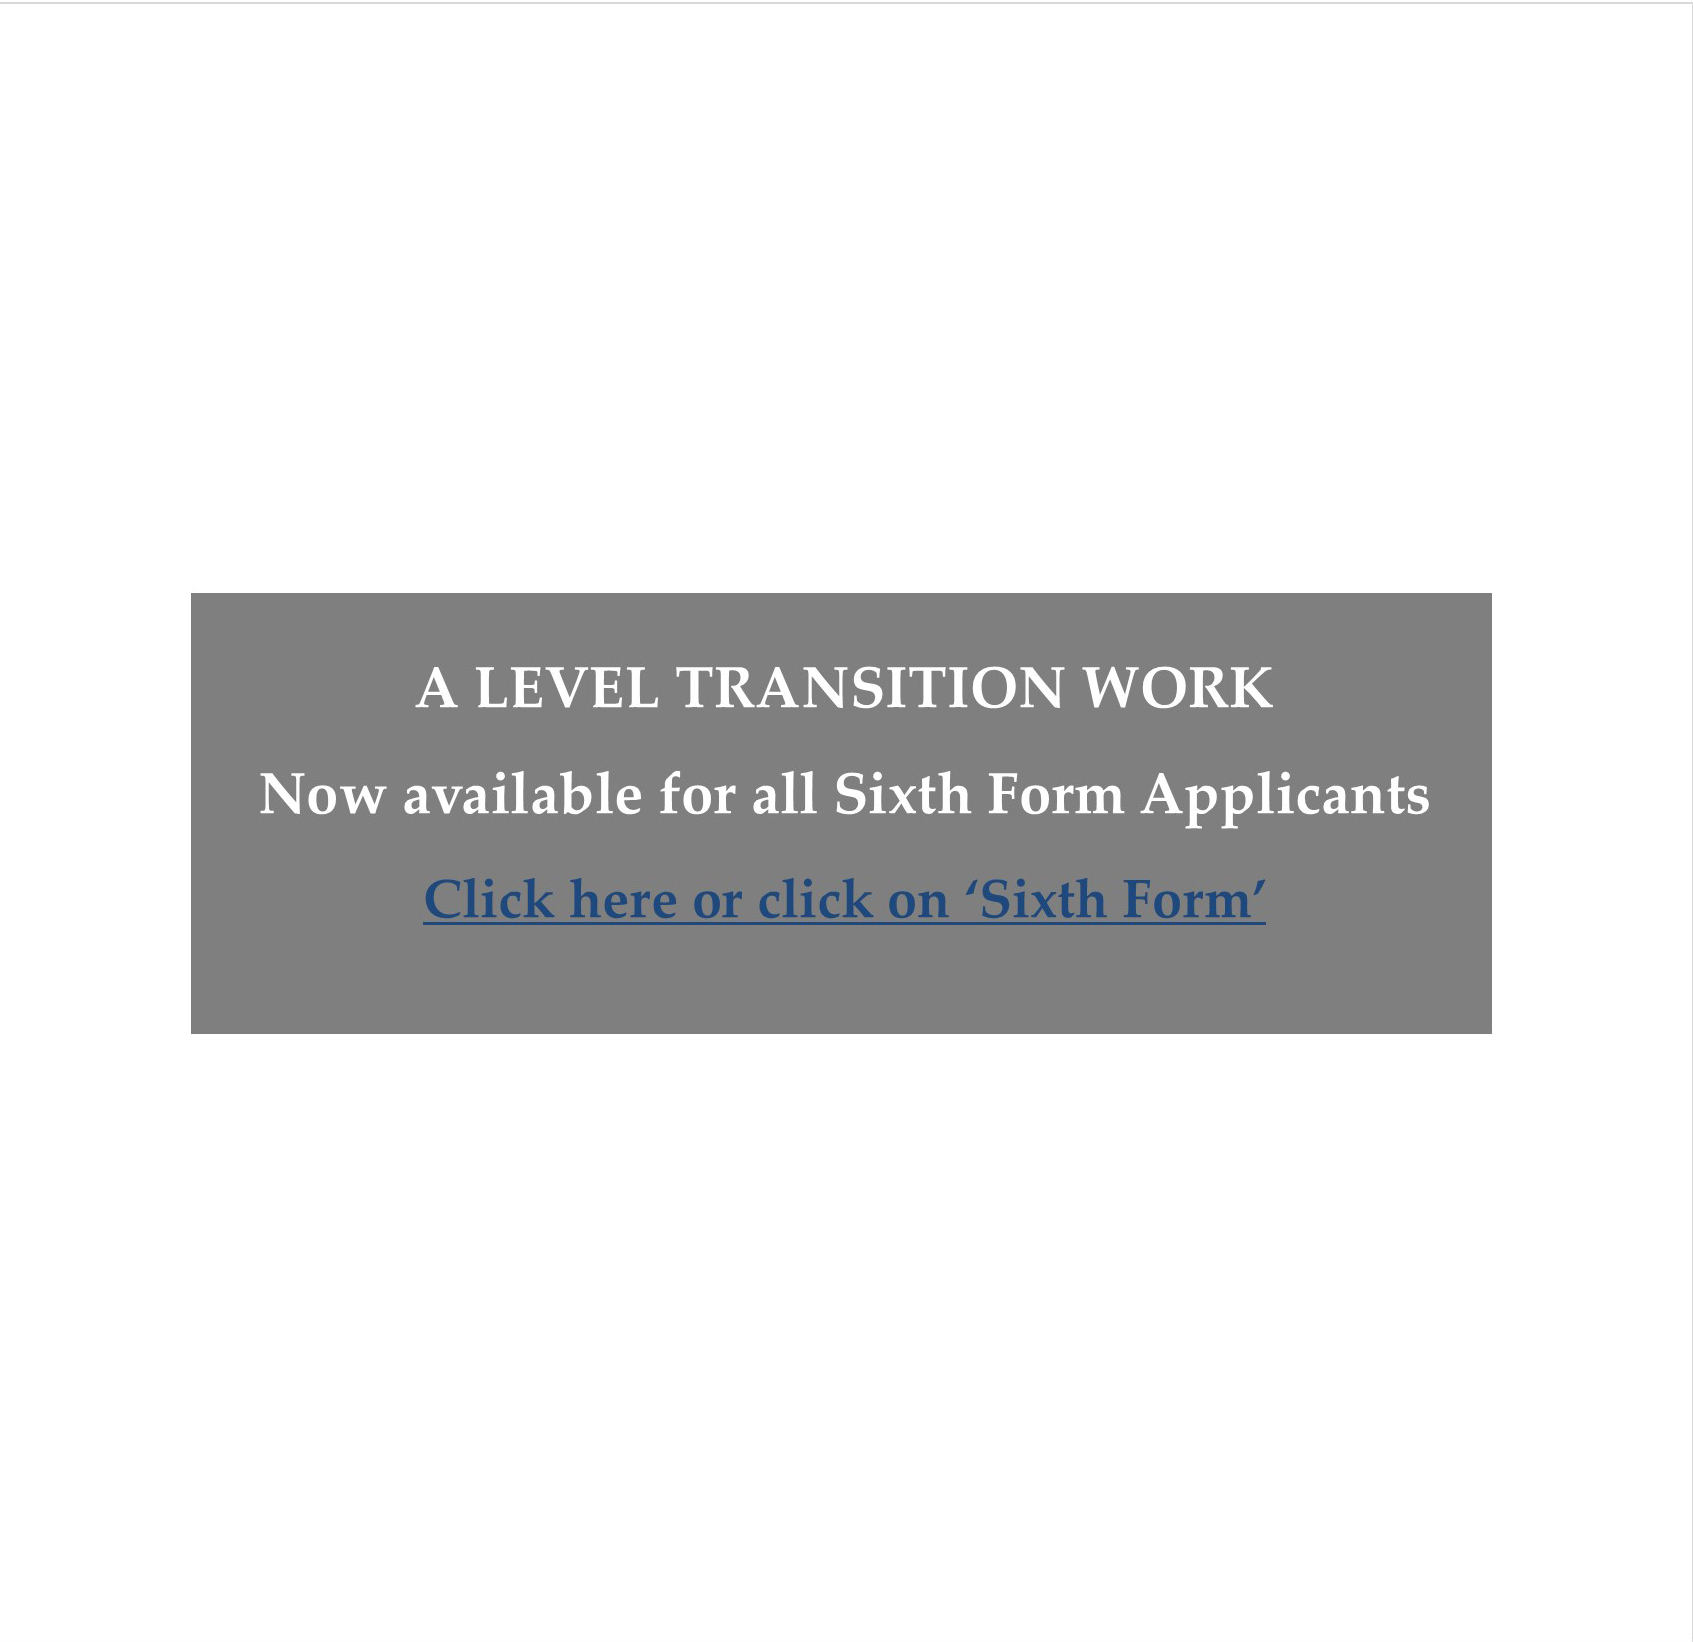 2020 Transistion Work Banner Website April 2020.pub